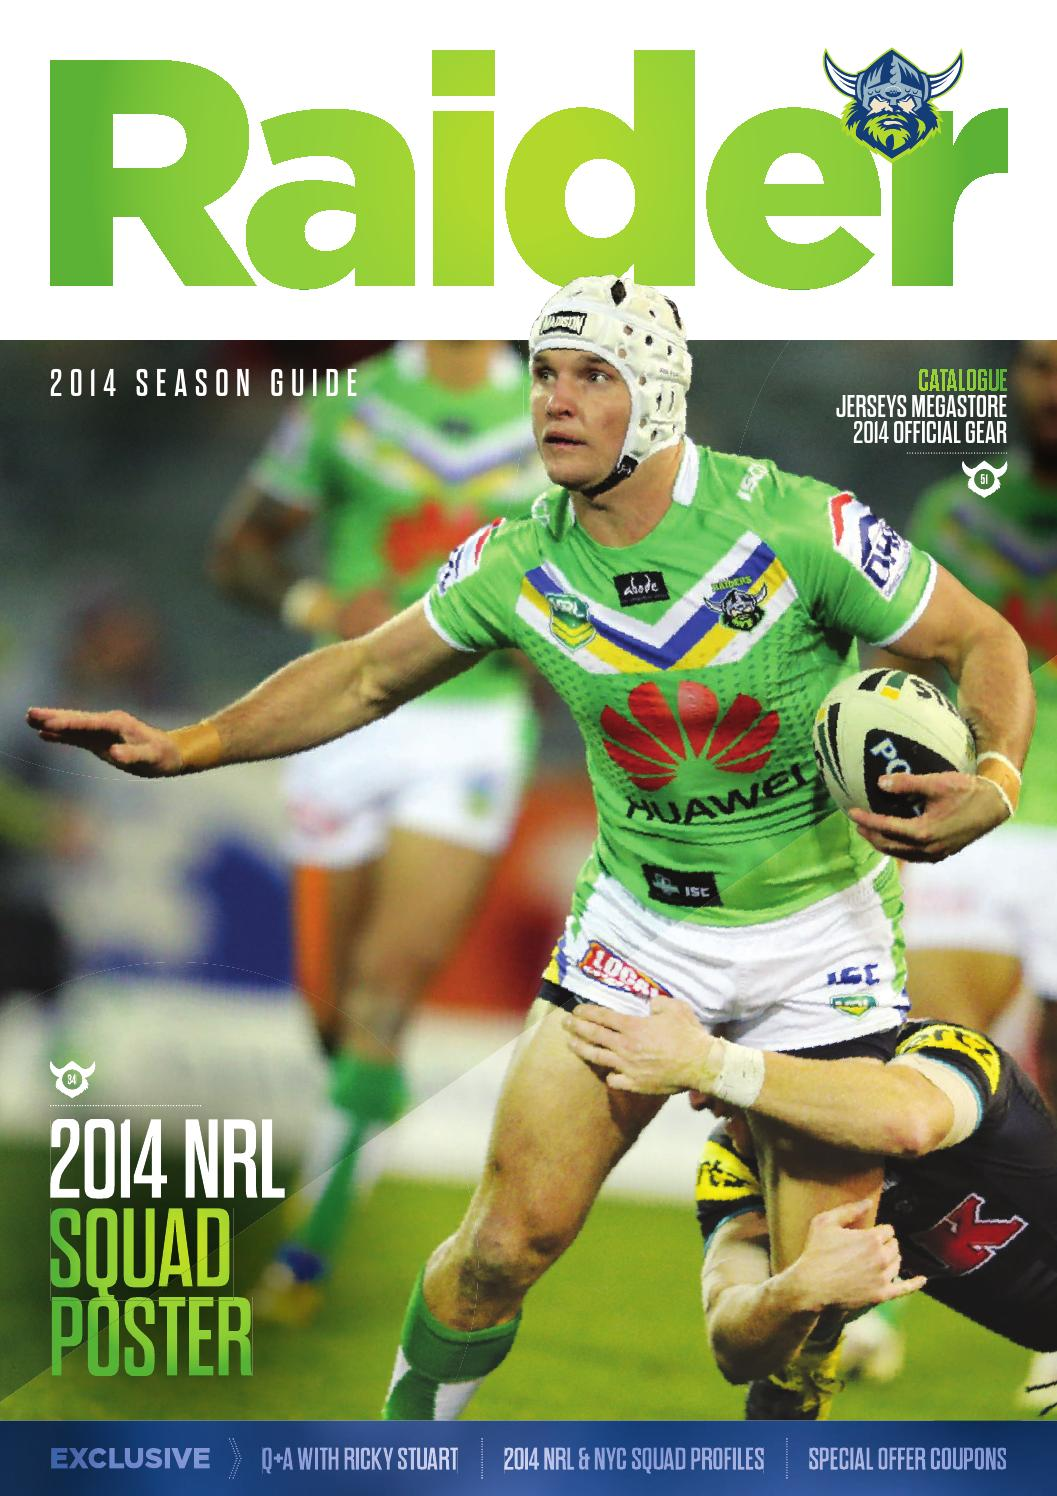 2014 Canberra Raiders Season Guide with Poster by Canberra Raiders - issuu 6b417fdd8